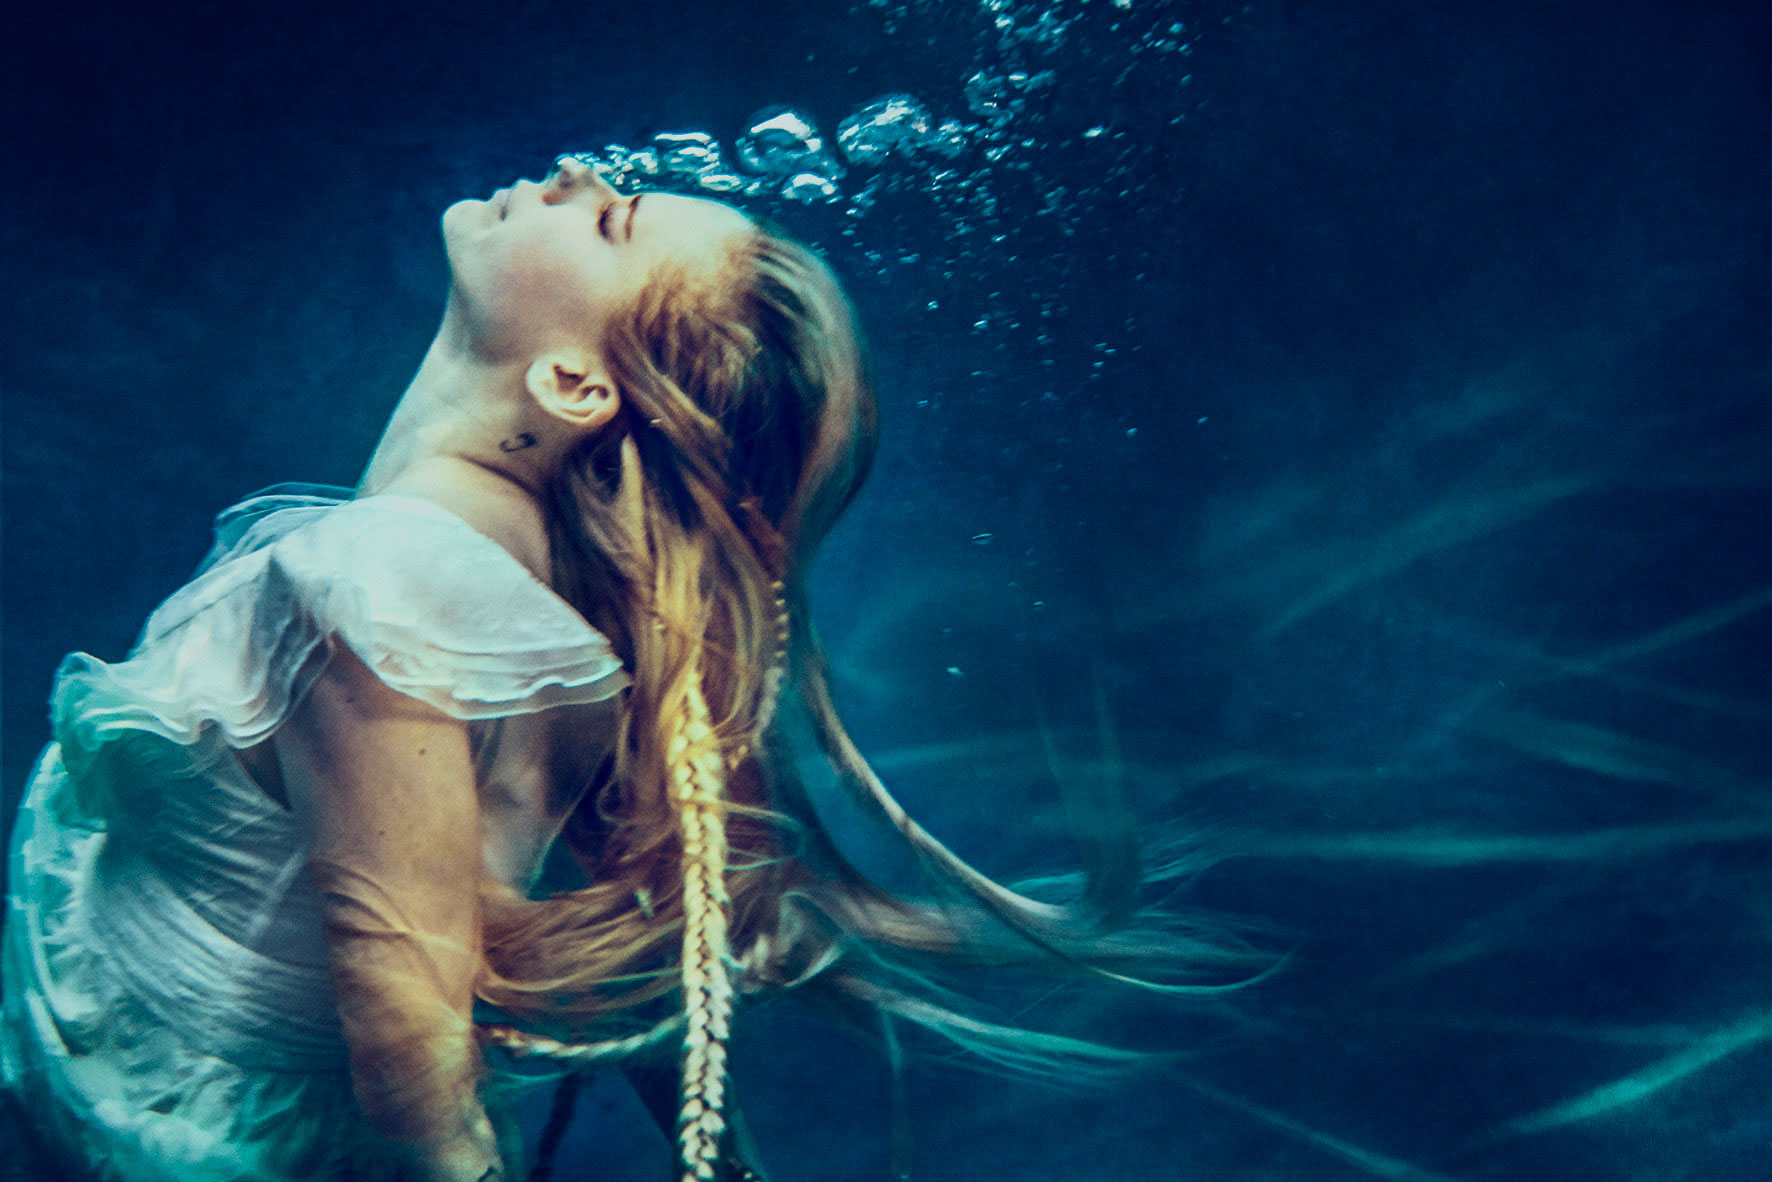 AVRIL_LAVIGNE_HEAD-_ABOVE_WATER_07